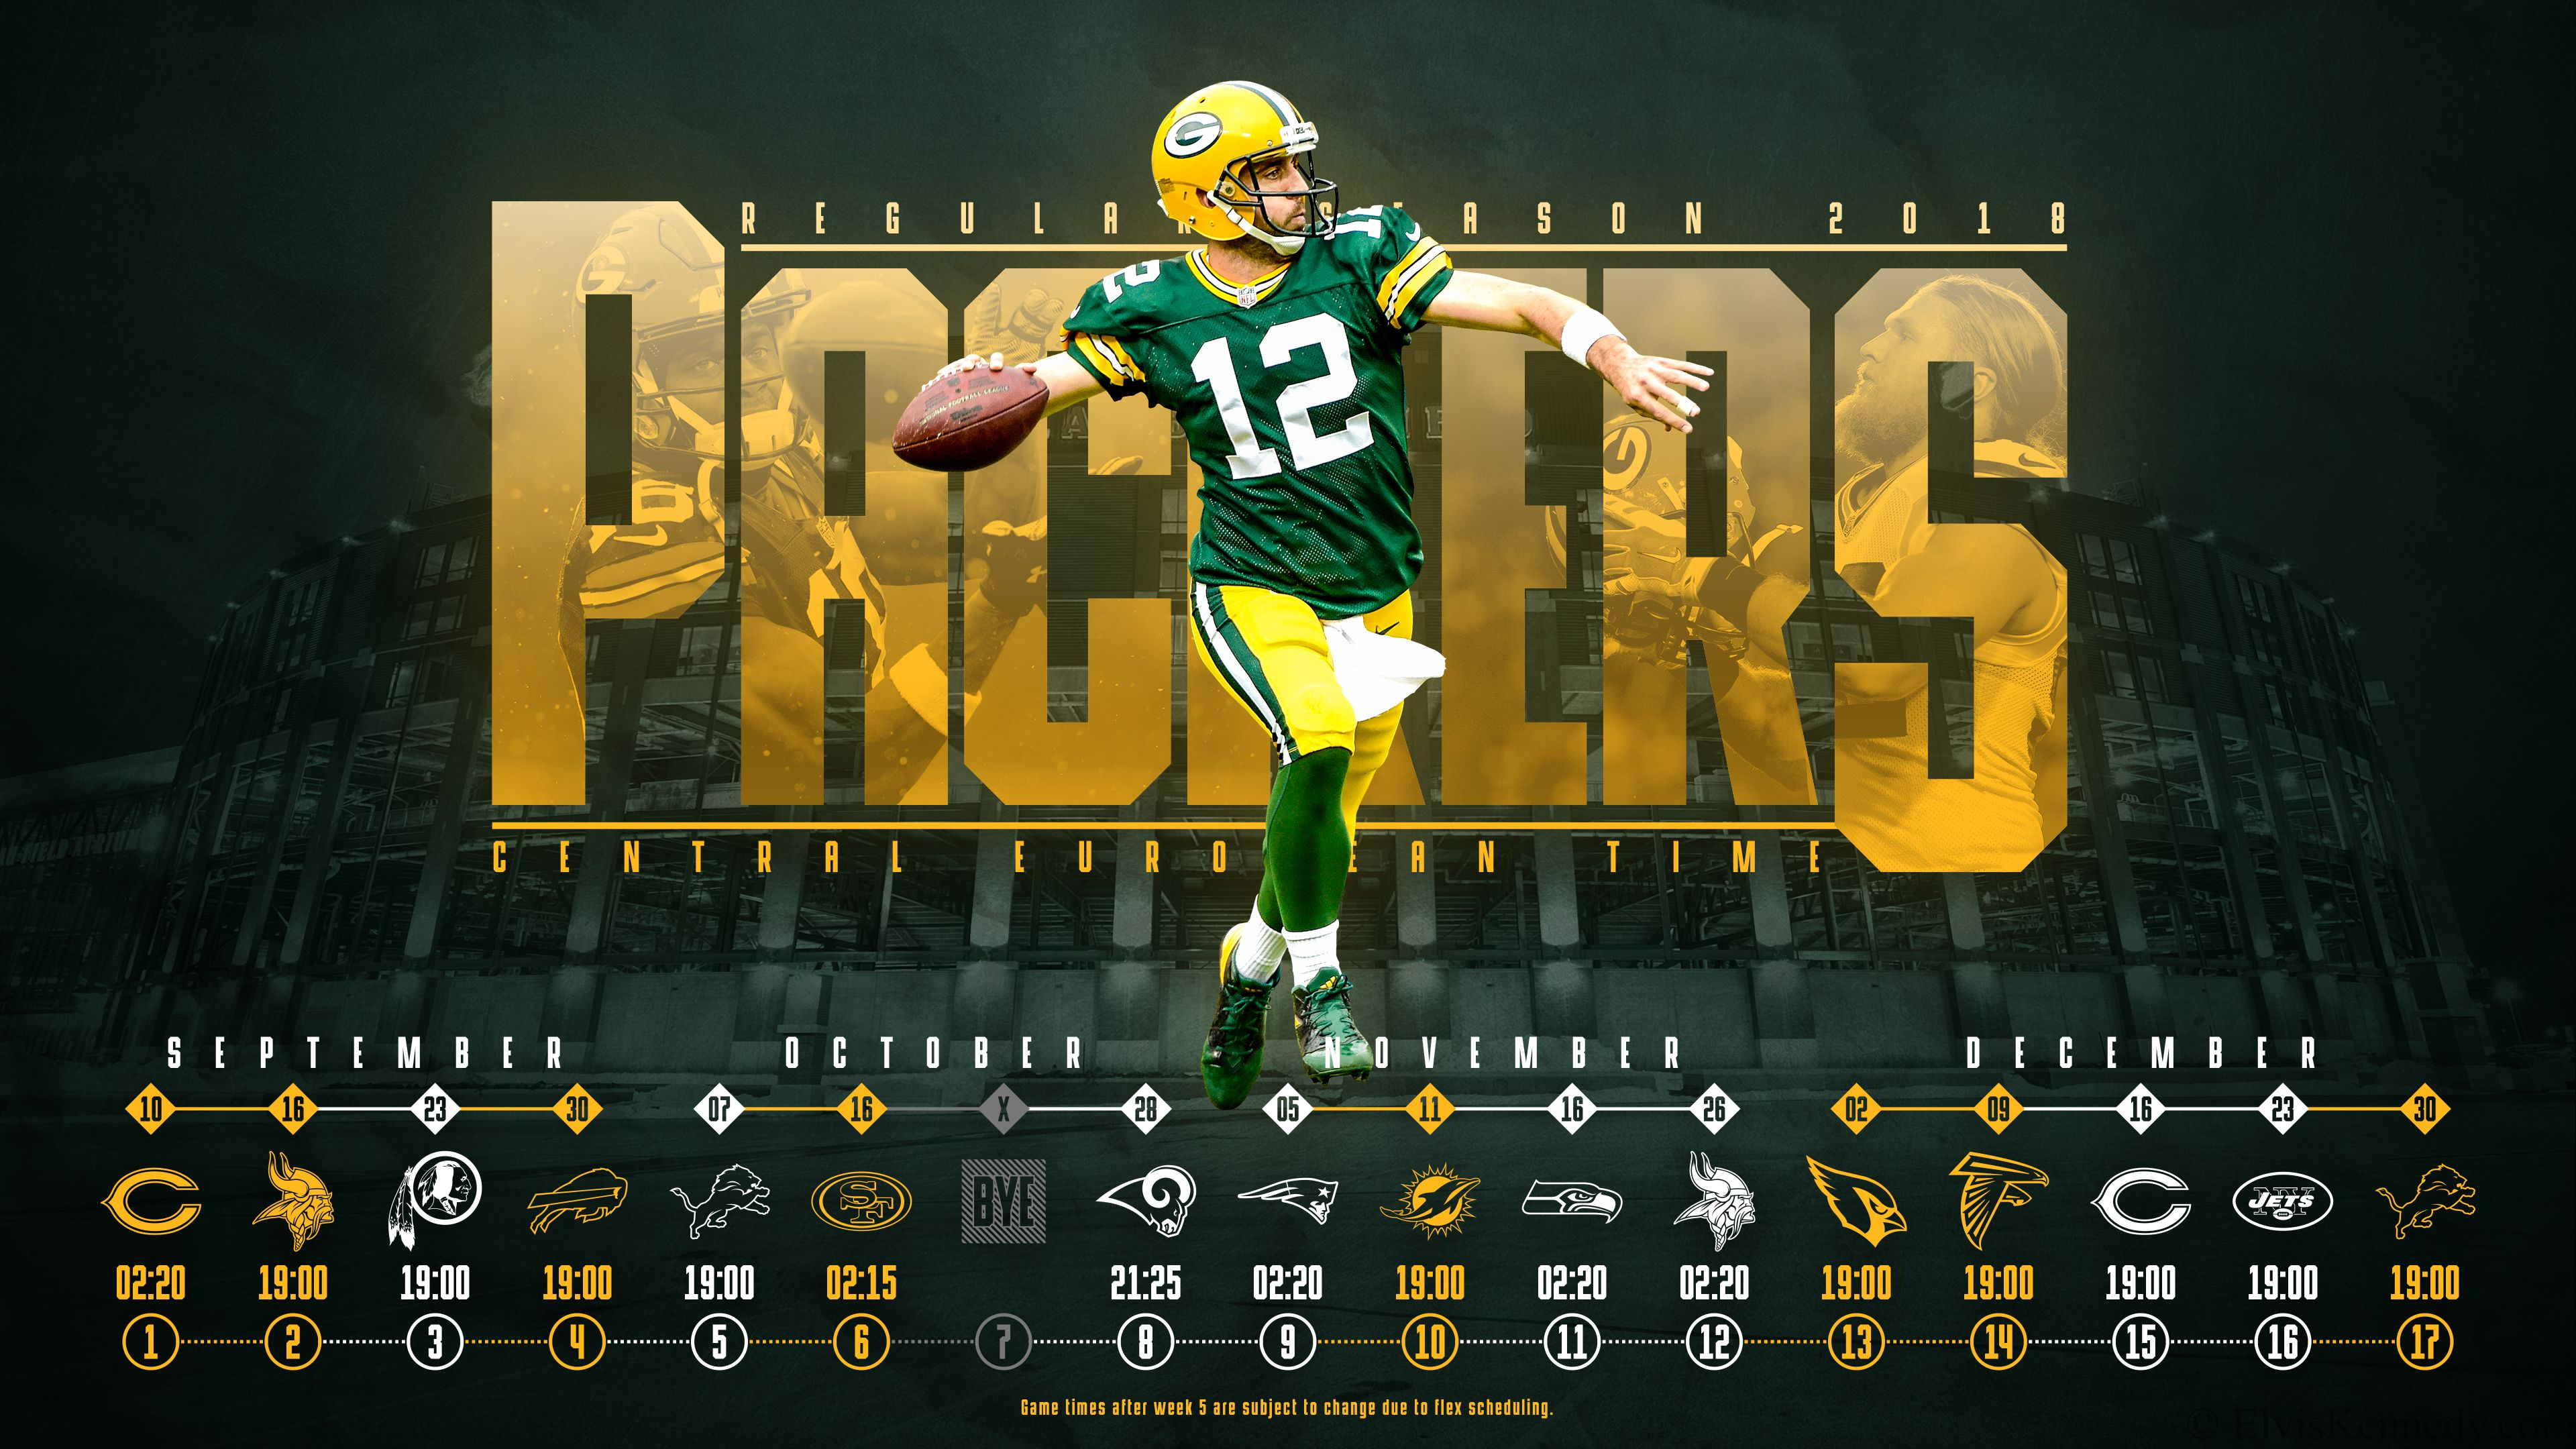 Schedule wallpaper for the Green Bay Packers Regular